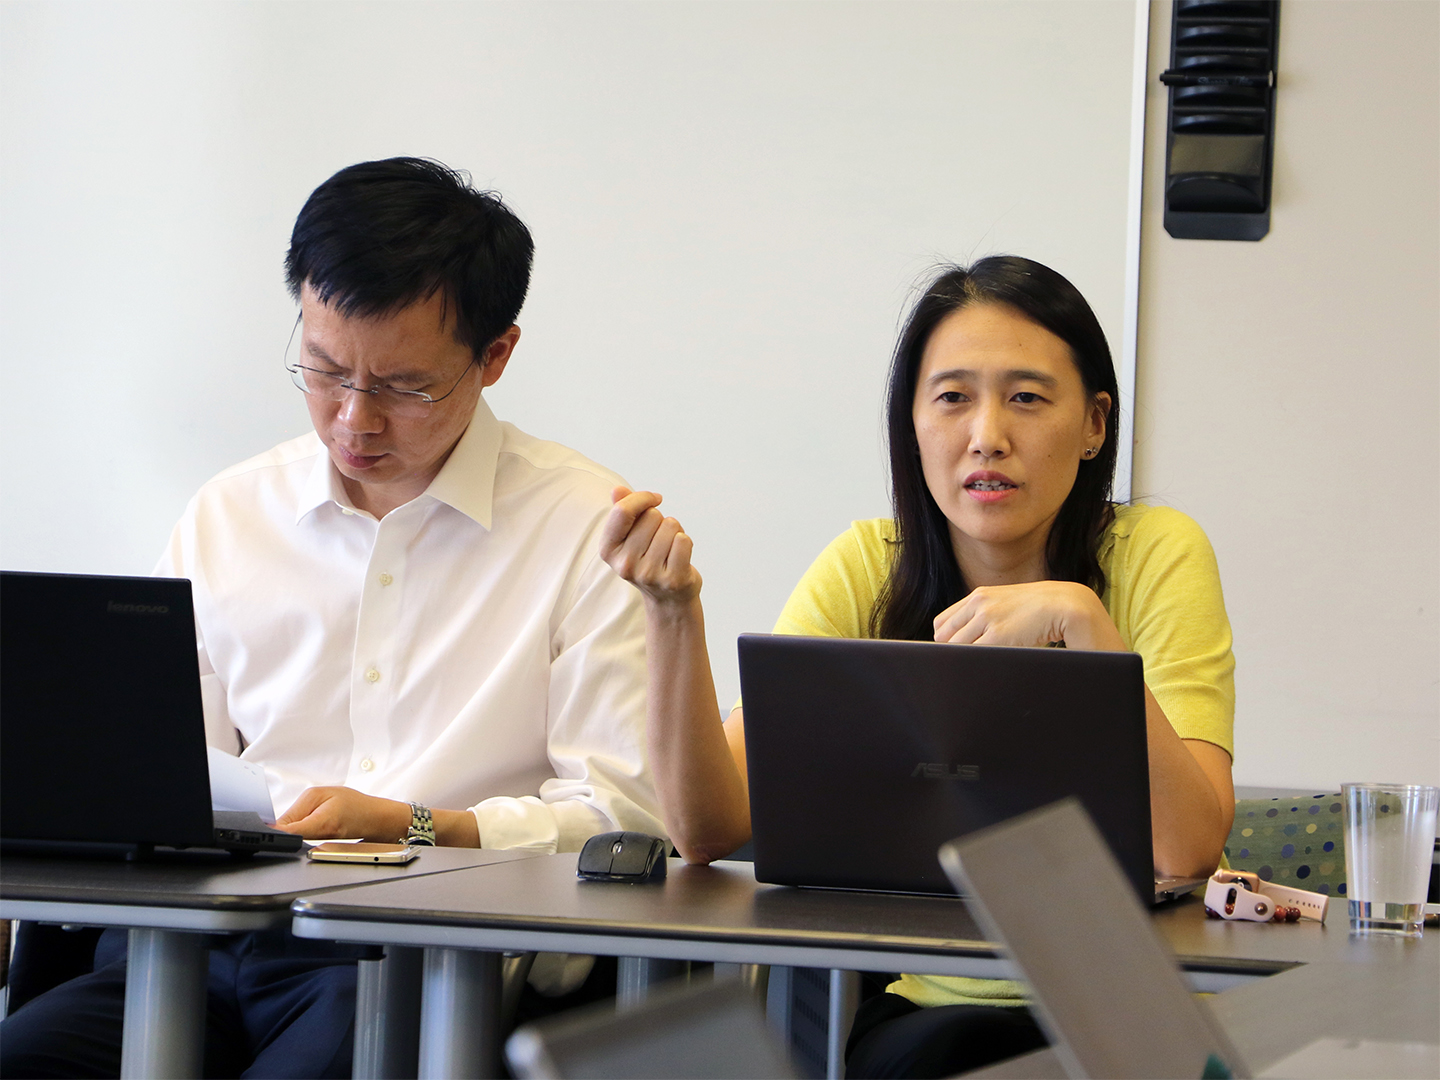 Han-Mei Tso sharing information about her research with Can Huang